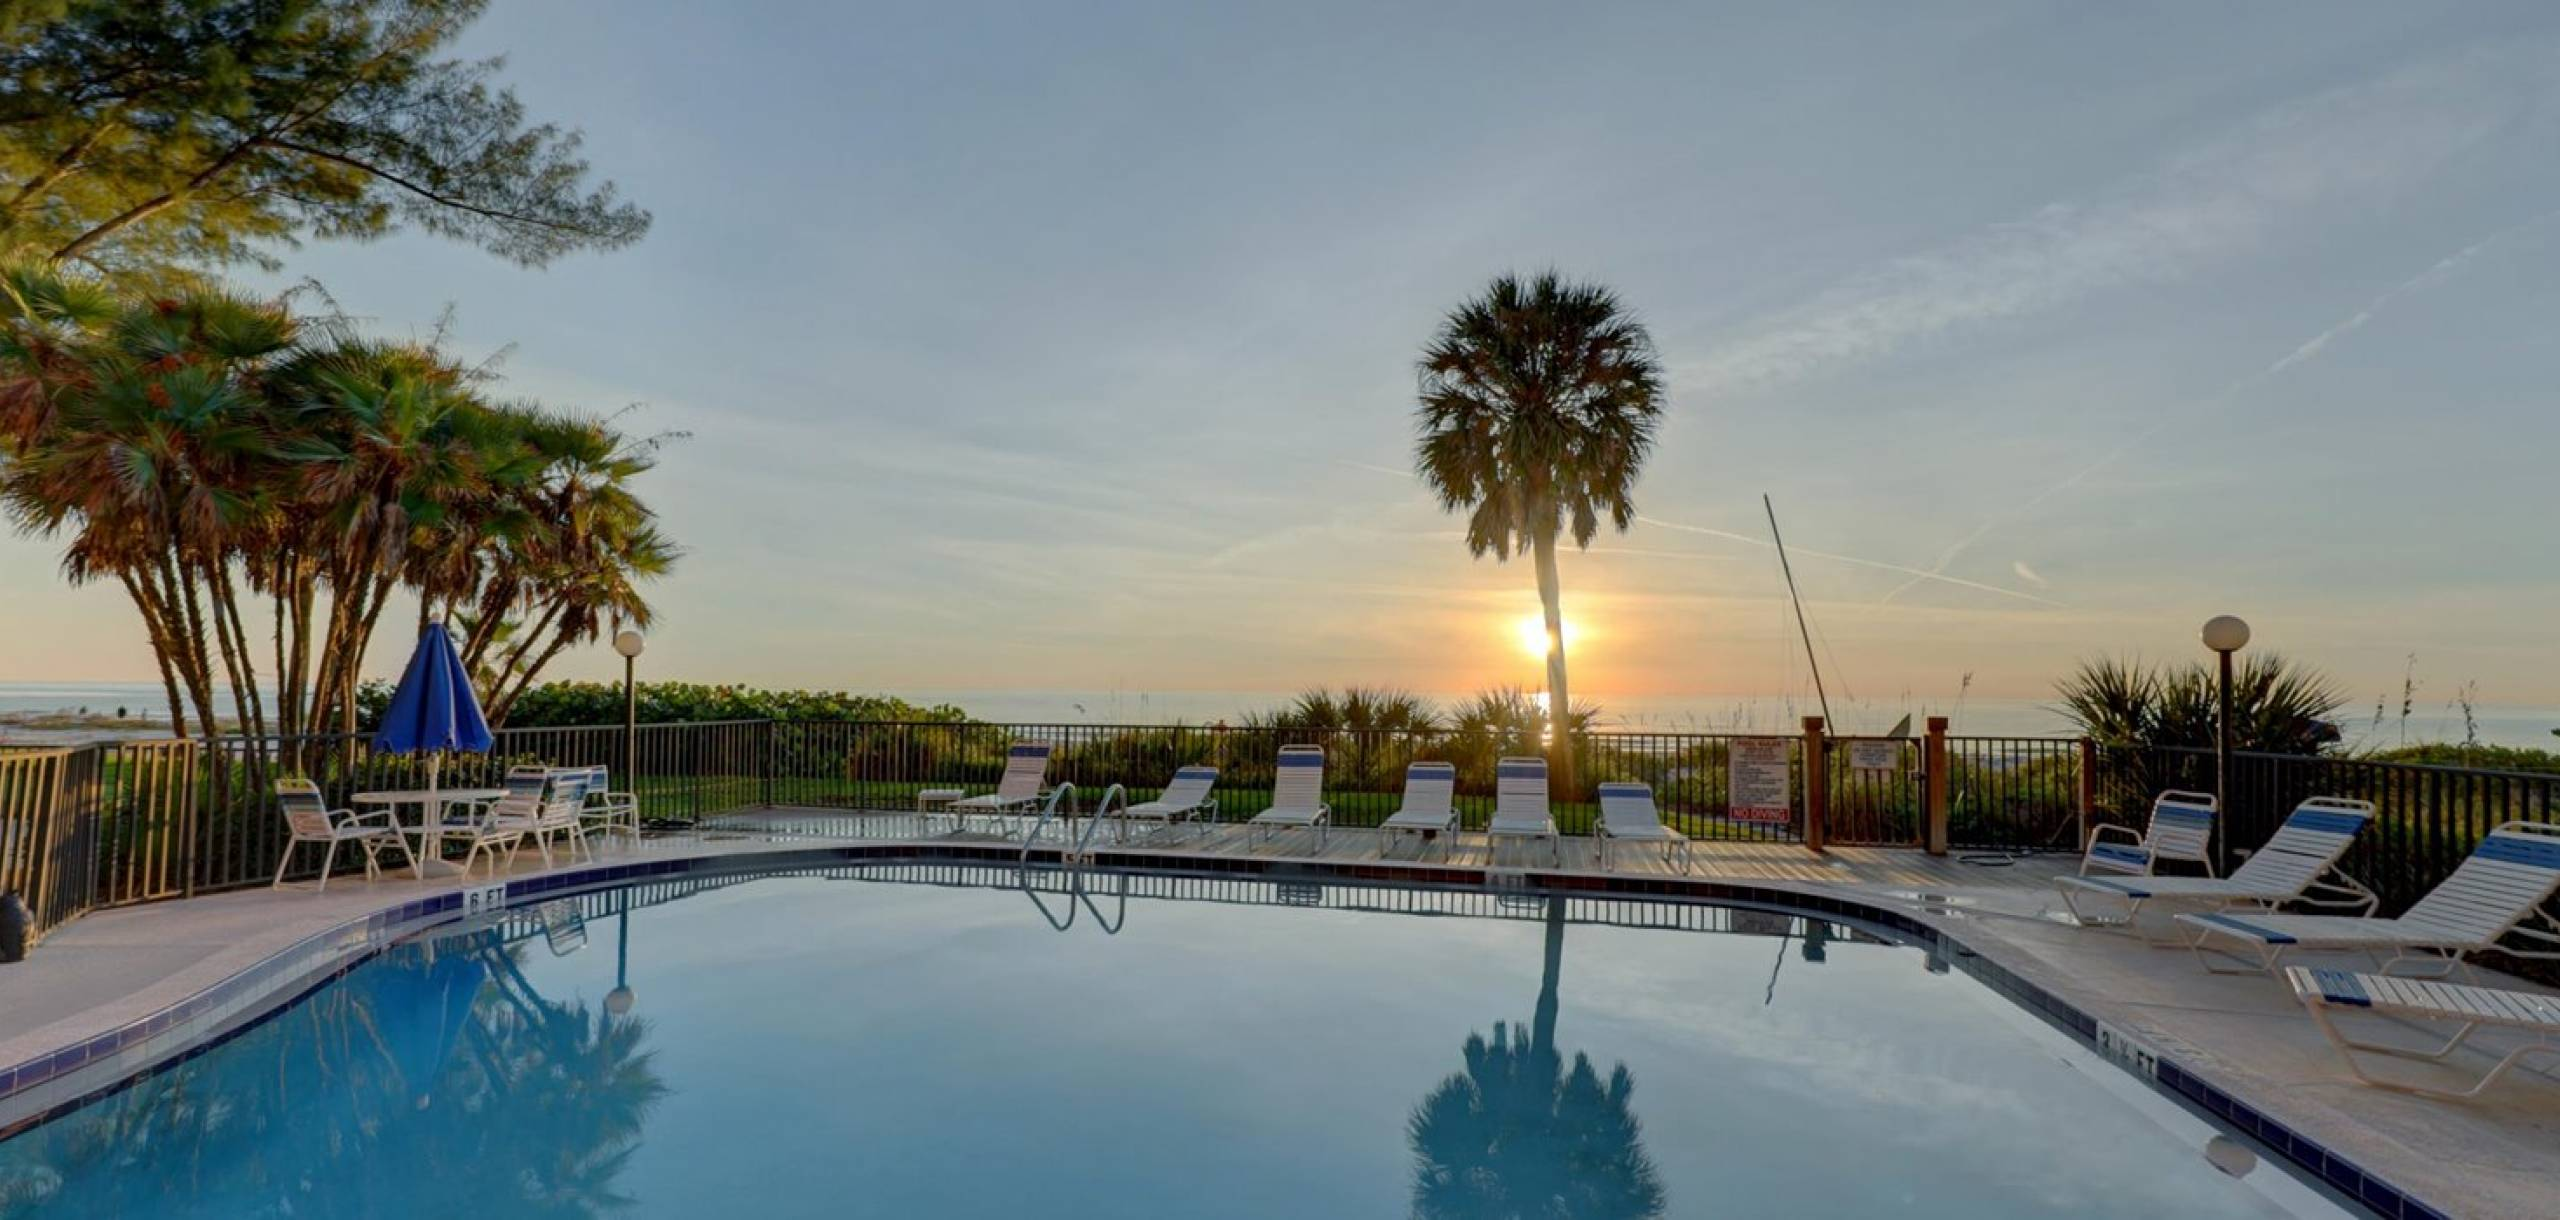 Sunset by the Pool on Indian Shores Beach